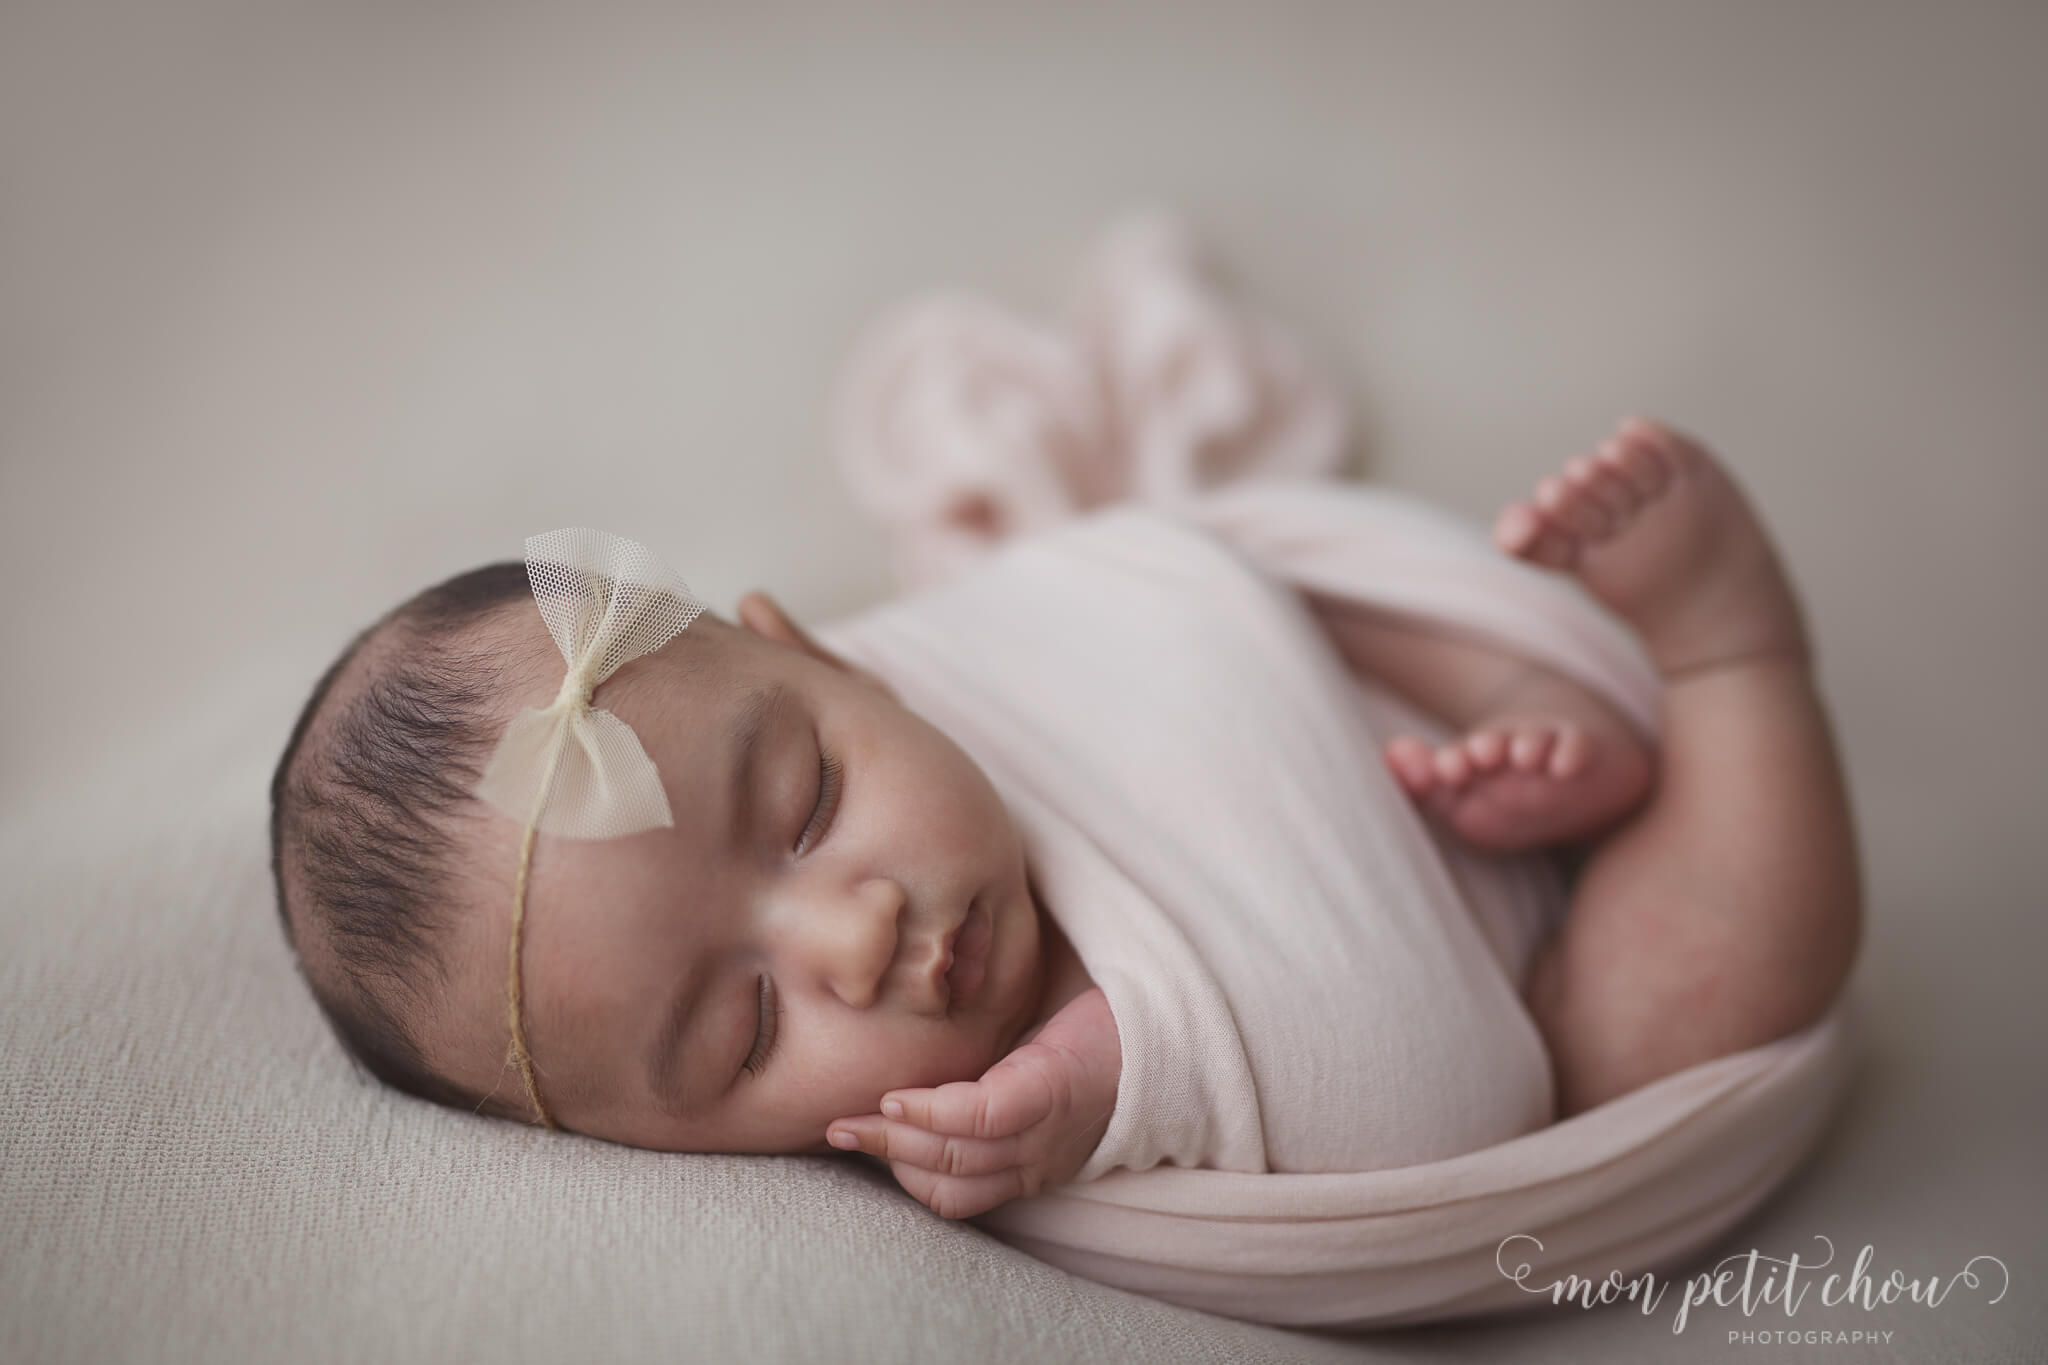 Wrapped baby girl sleeping during a newborn shoot in Markham.